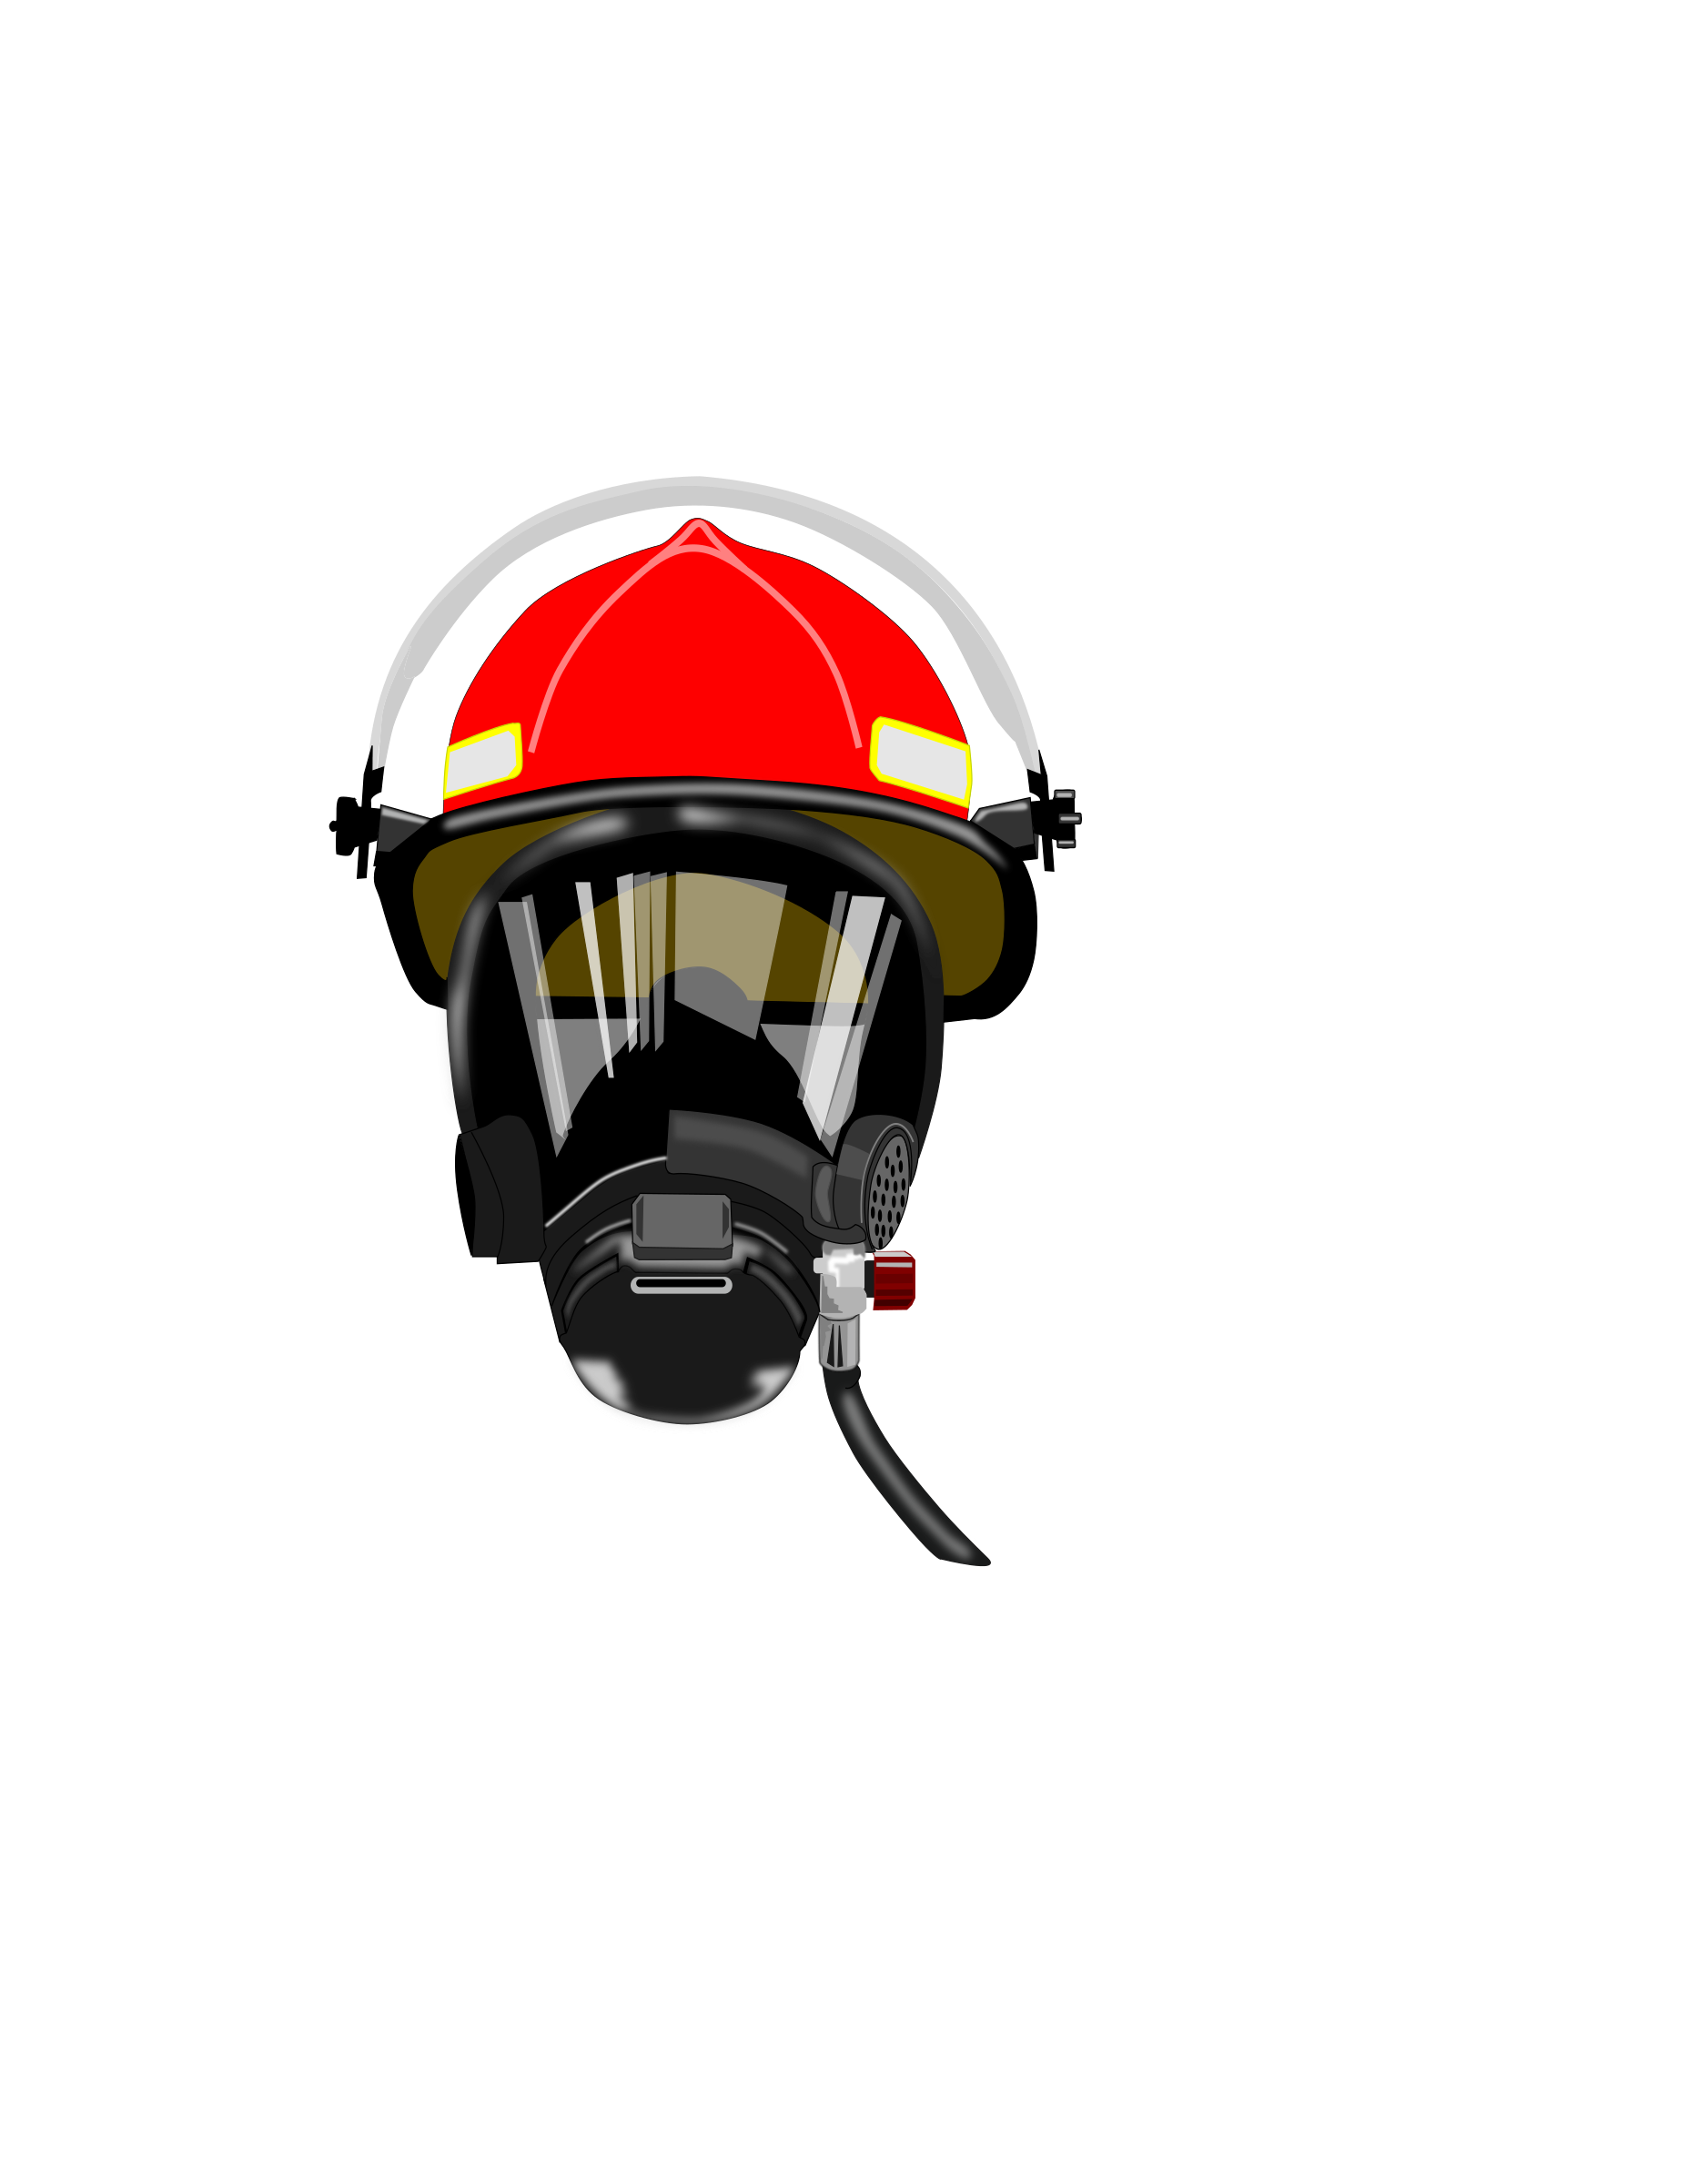 Fireman cross clipart banner royalty free stock Fire Helmet Silhouette at GetDrawings.com | Free for personal use ... banner royalty free stock